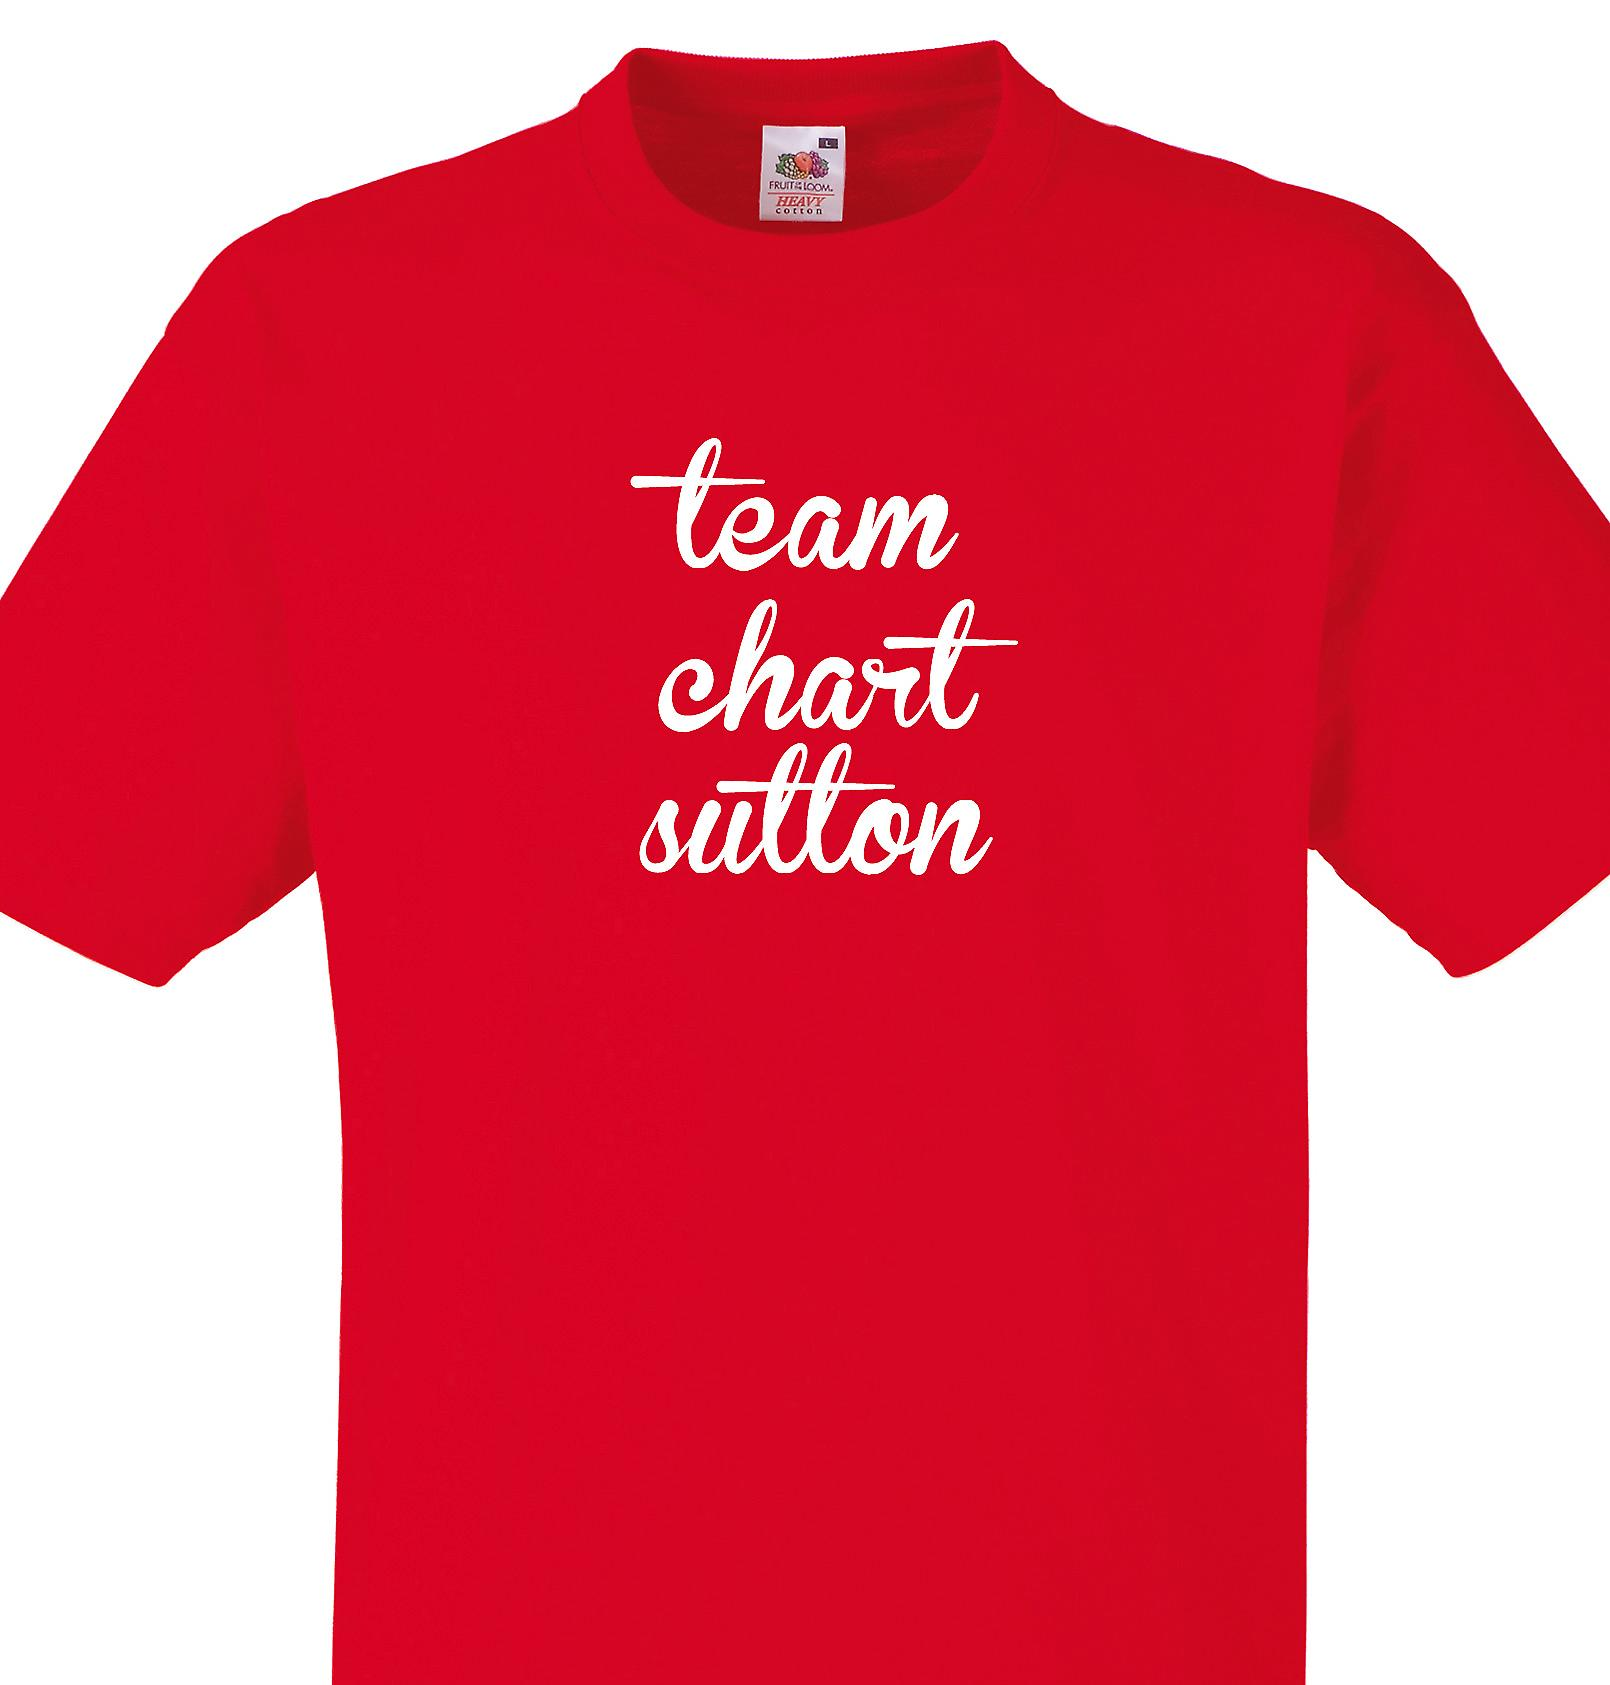 Team Chart sutton Red T shirt